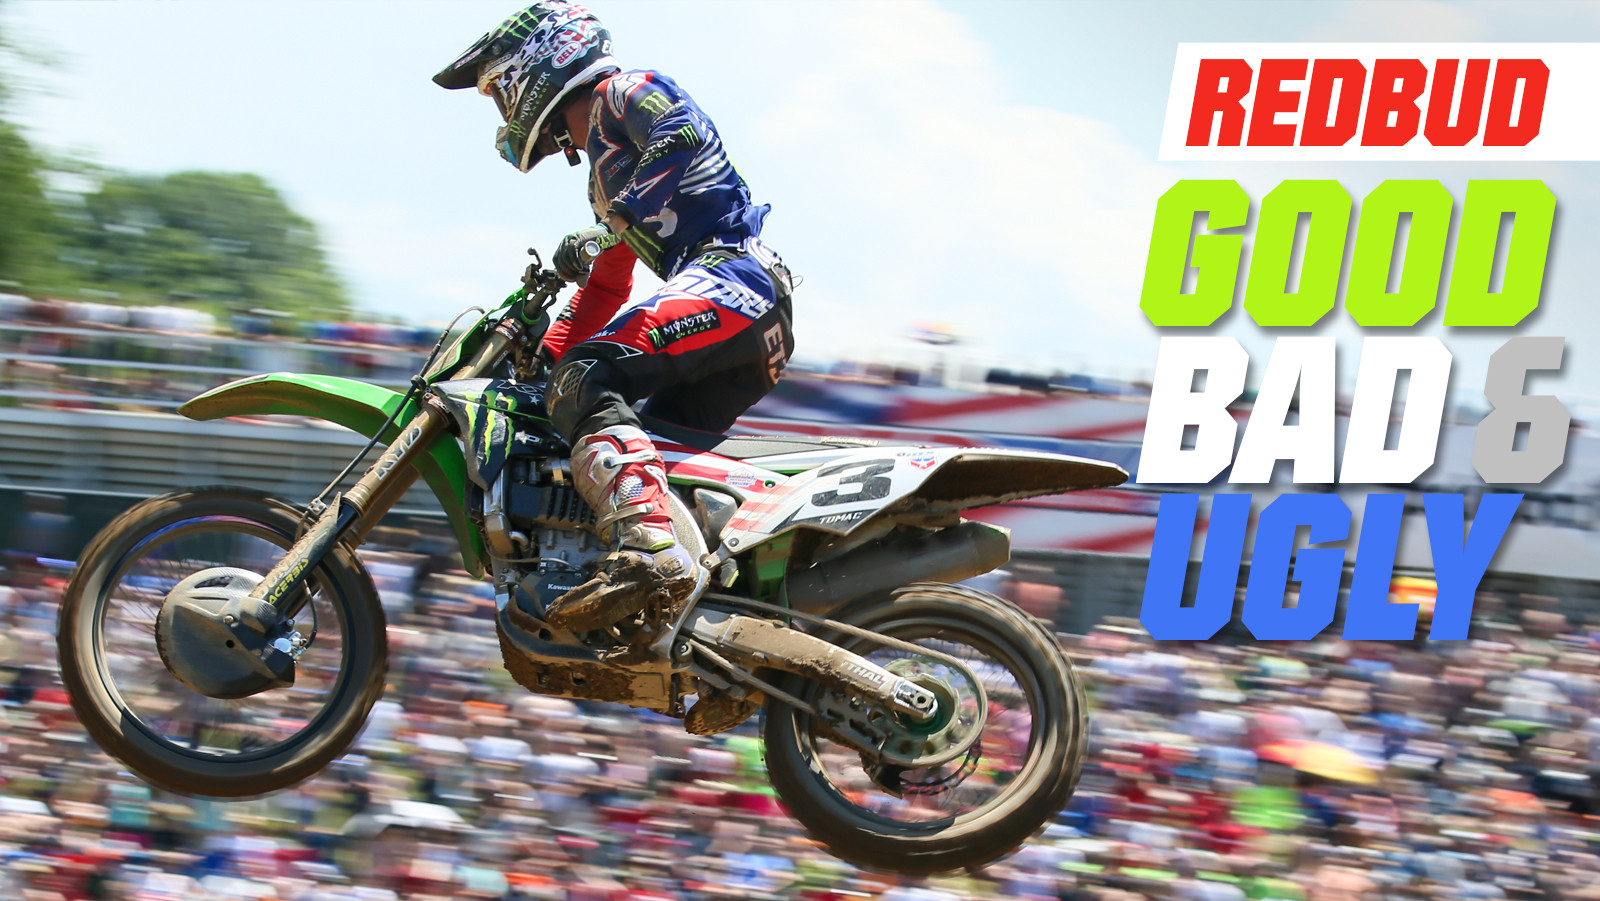 RedBud - The Good, the Bad, and the Ugly